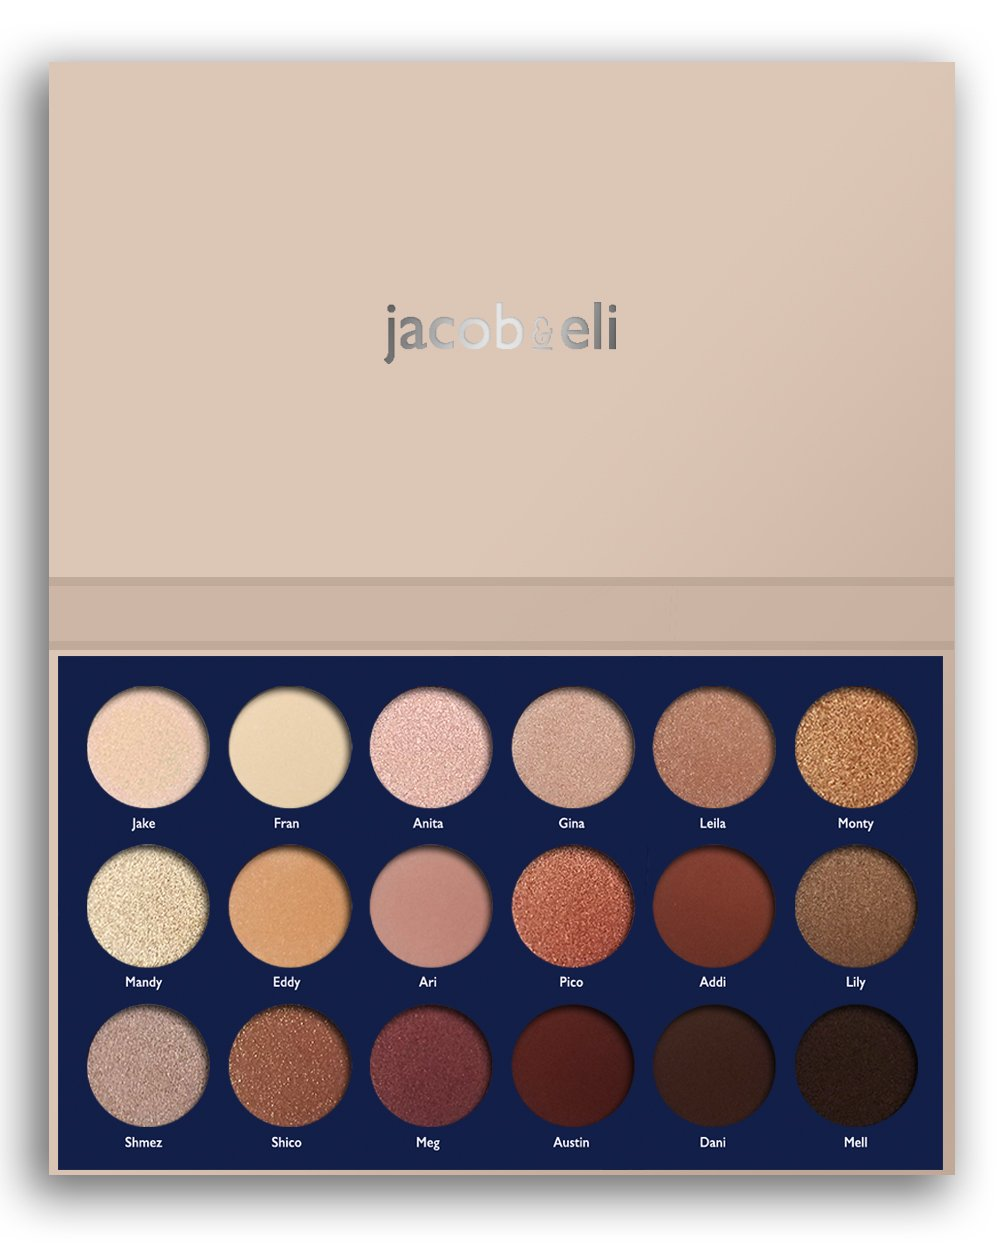 18 Super Pigmented - Top Influencer Professional Eyeshadow Palette all finishes, 5 Matte + 9 Shimmer + 4 Duochrome - Buttery Soft, Creamy Texture, Blendable, Long Lasting Stay (Bare) by Jacob & Eli (Image #1)